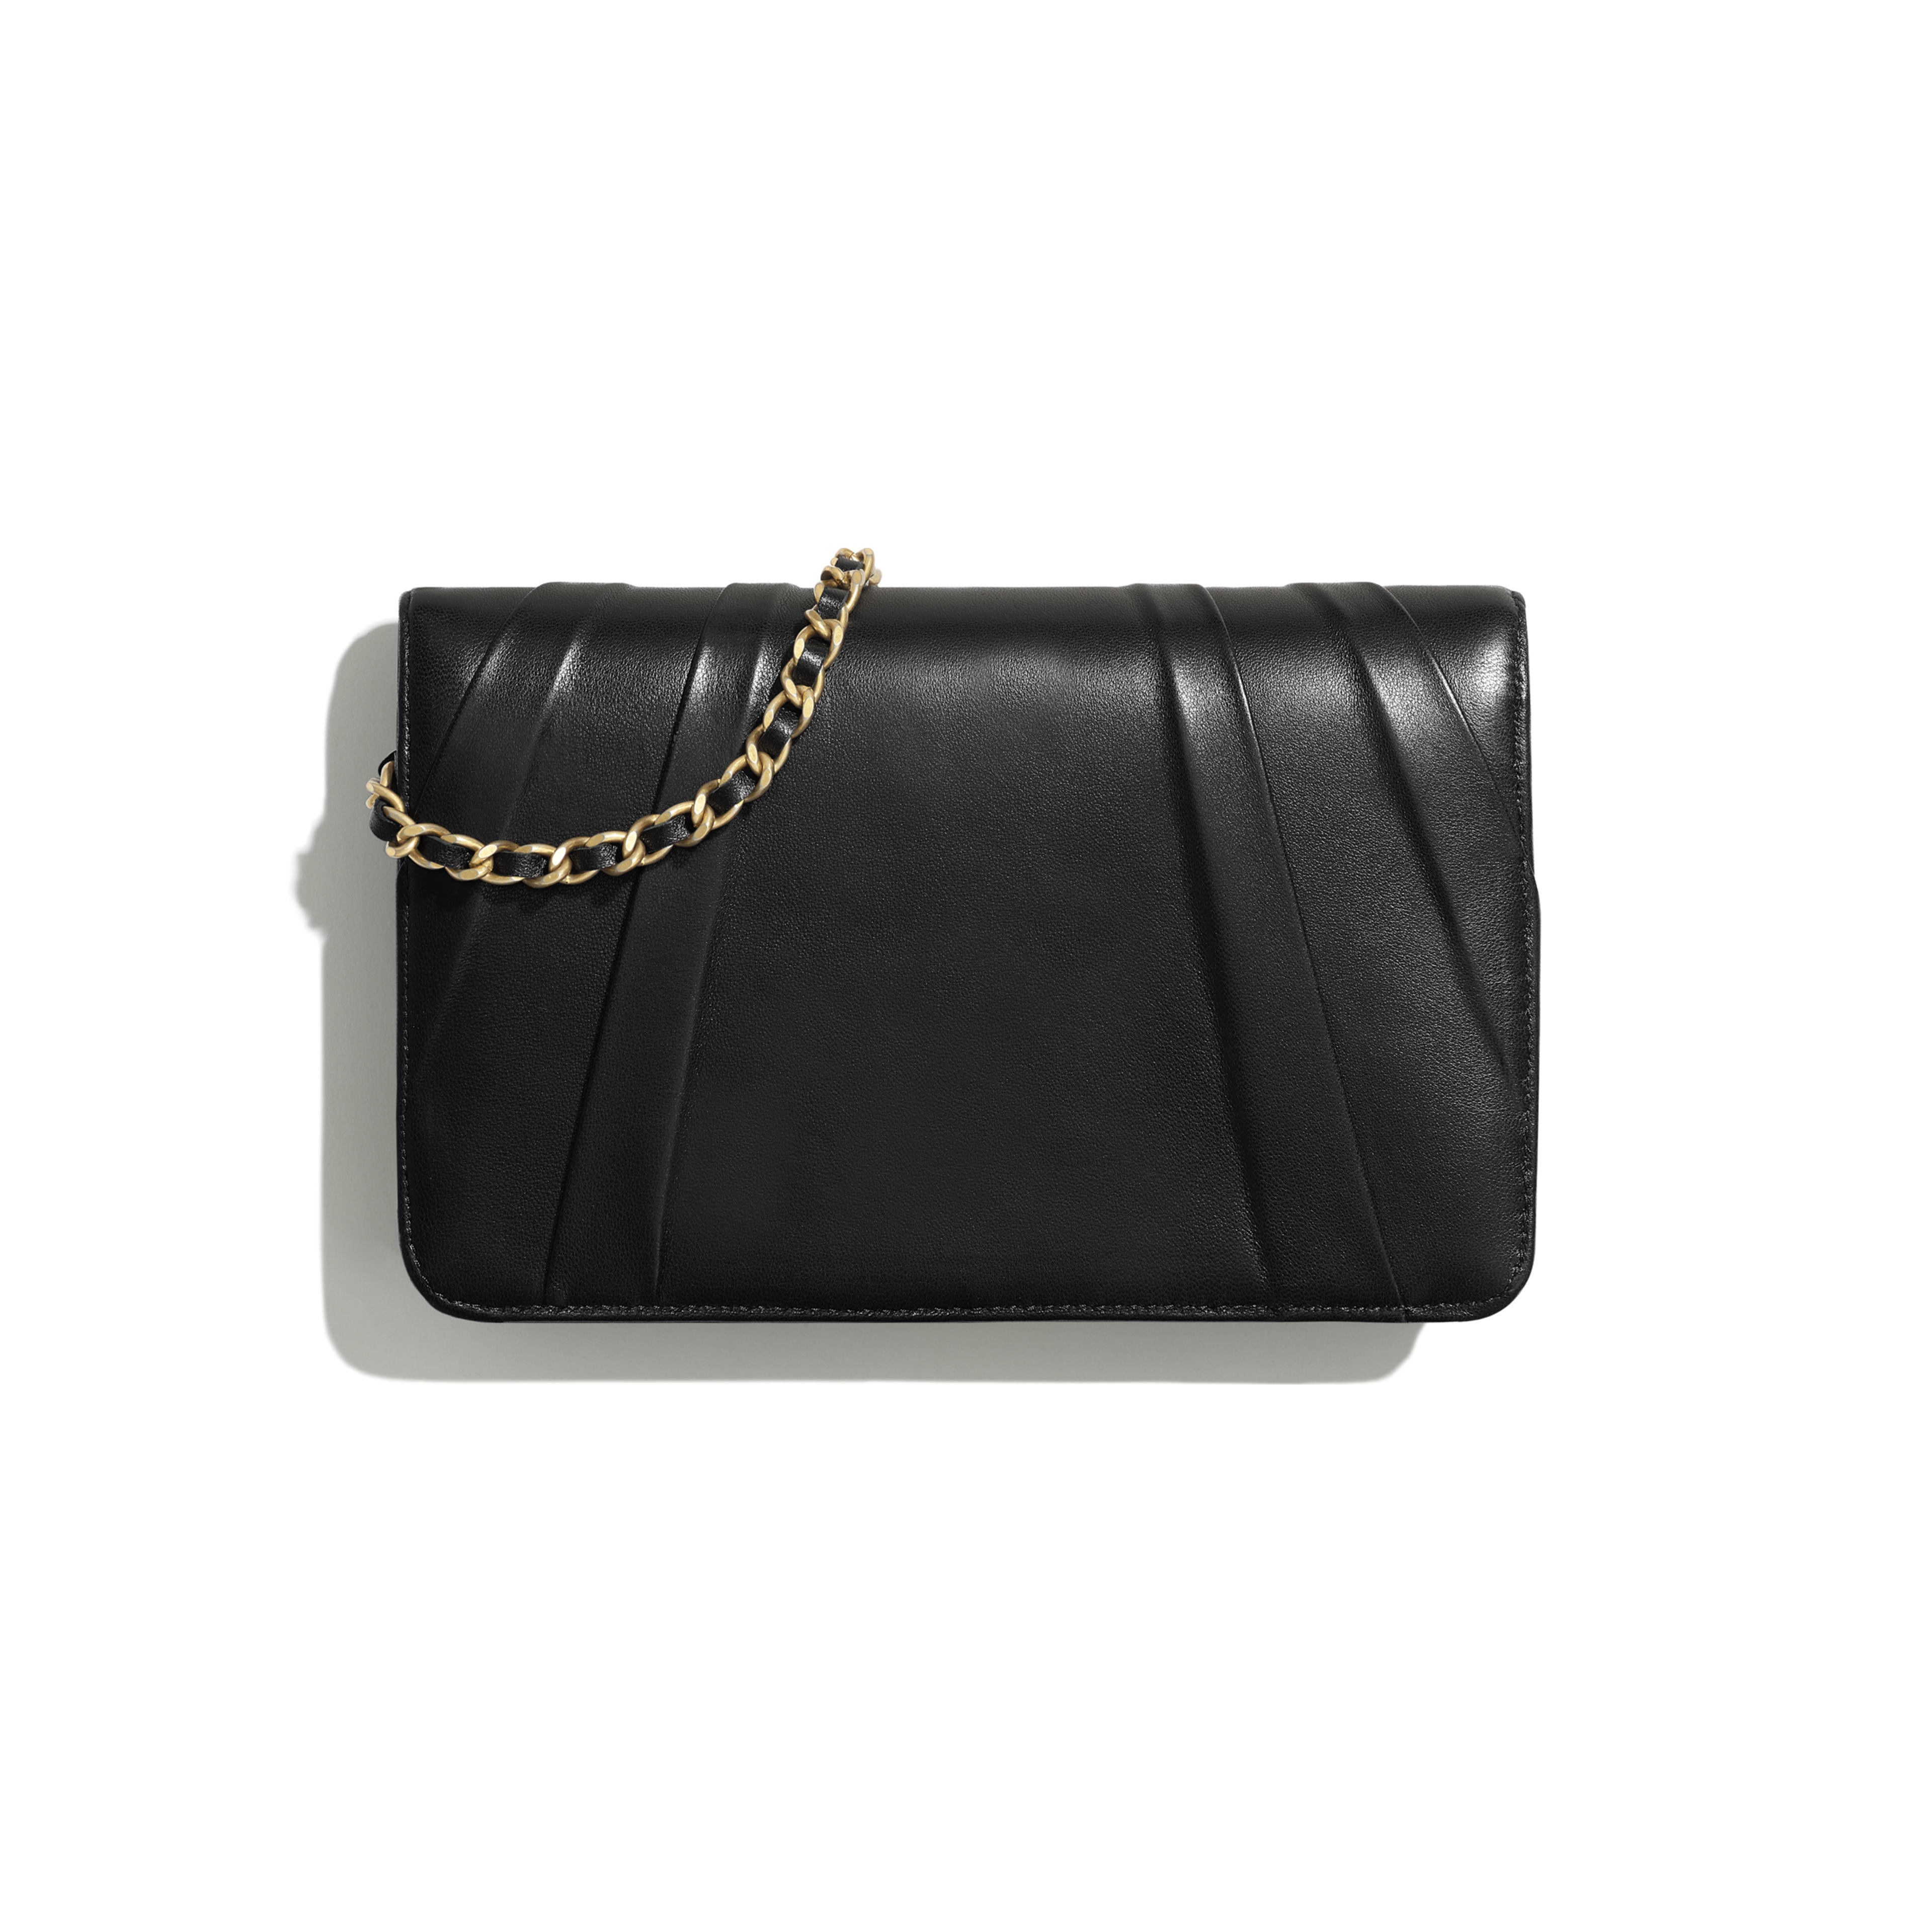 Wallet on Chain - Black - Pleated Lambskin & Gold-Tone Metal - Alternative view - see full sized version